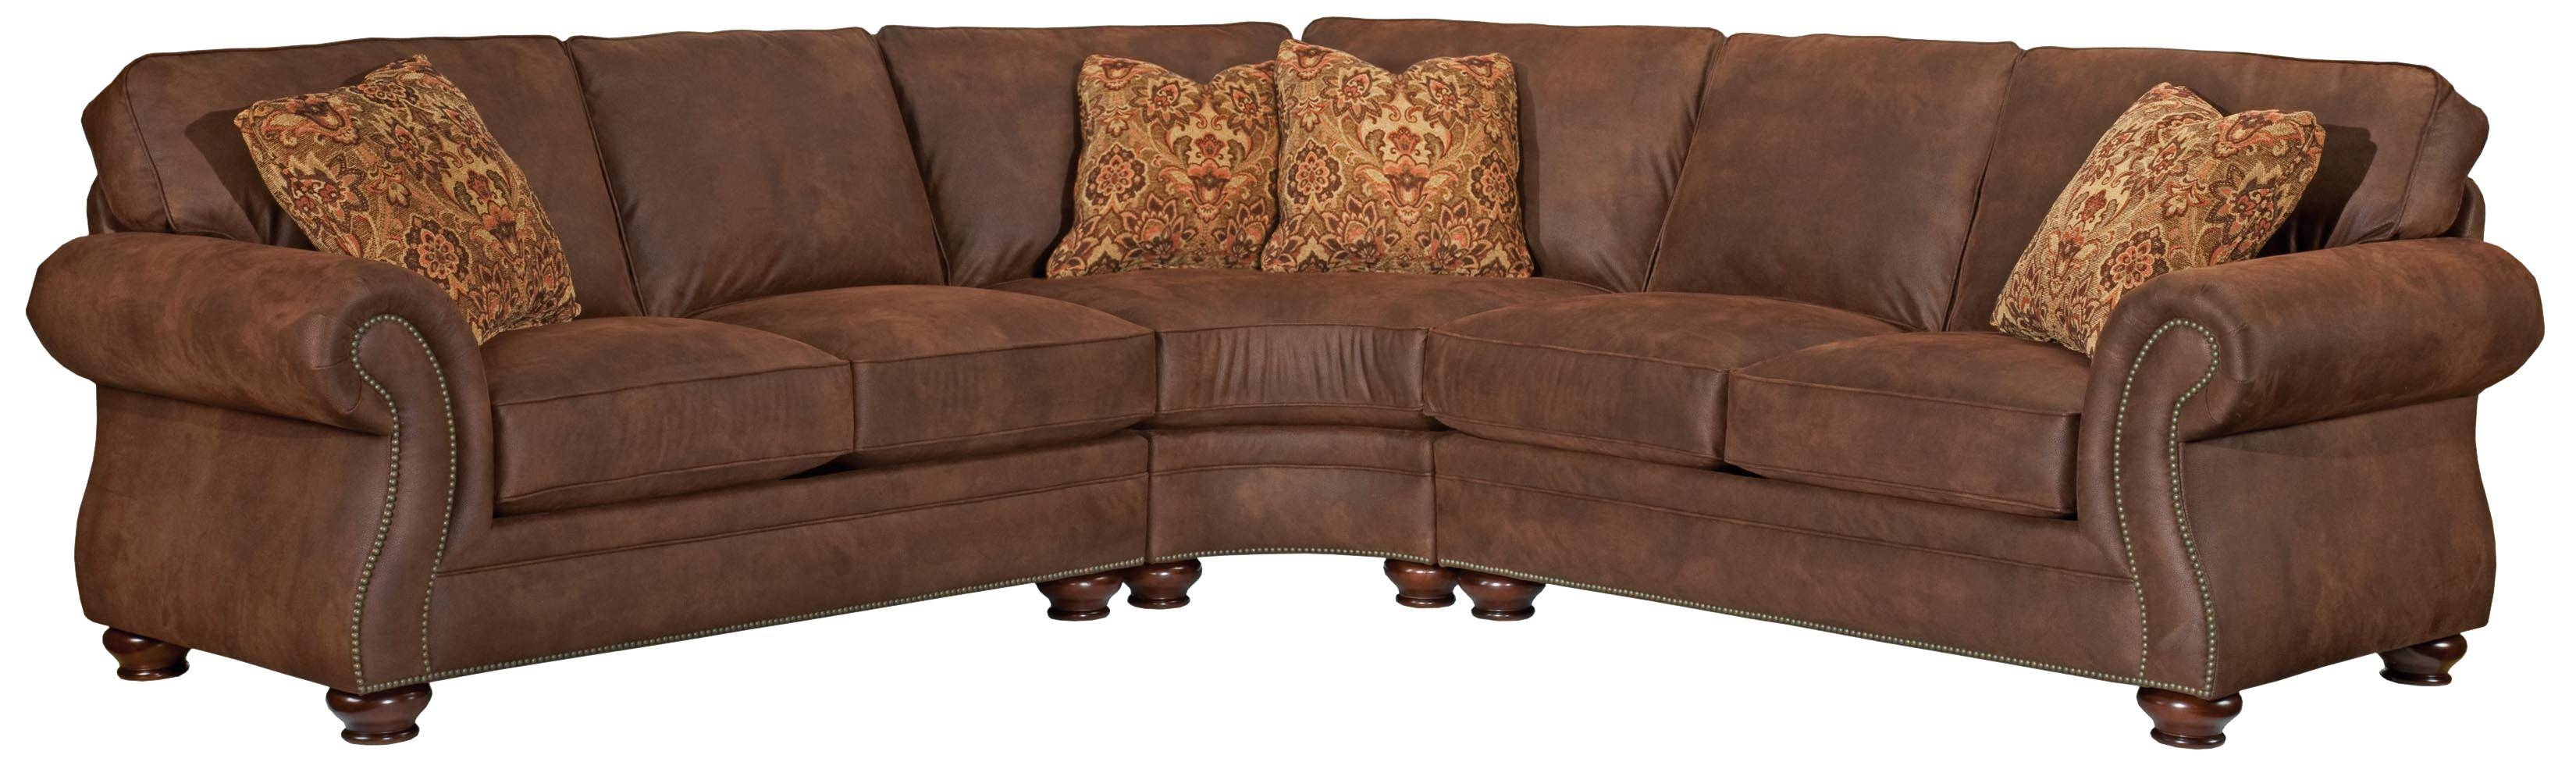 Broyhill Furniture Laramie 3 Piece Wedge Sectional Sofa - Ahfa with Broyhill Reclining Sofas (Image 2 of 15)